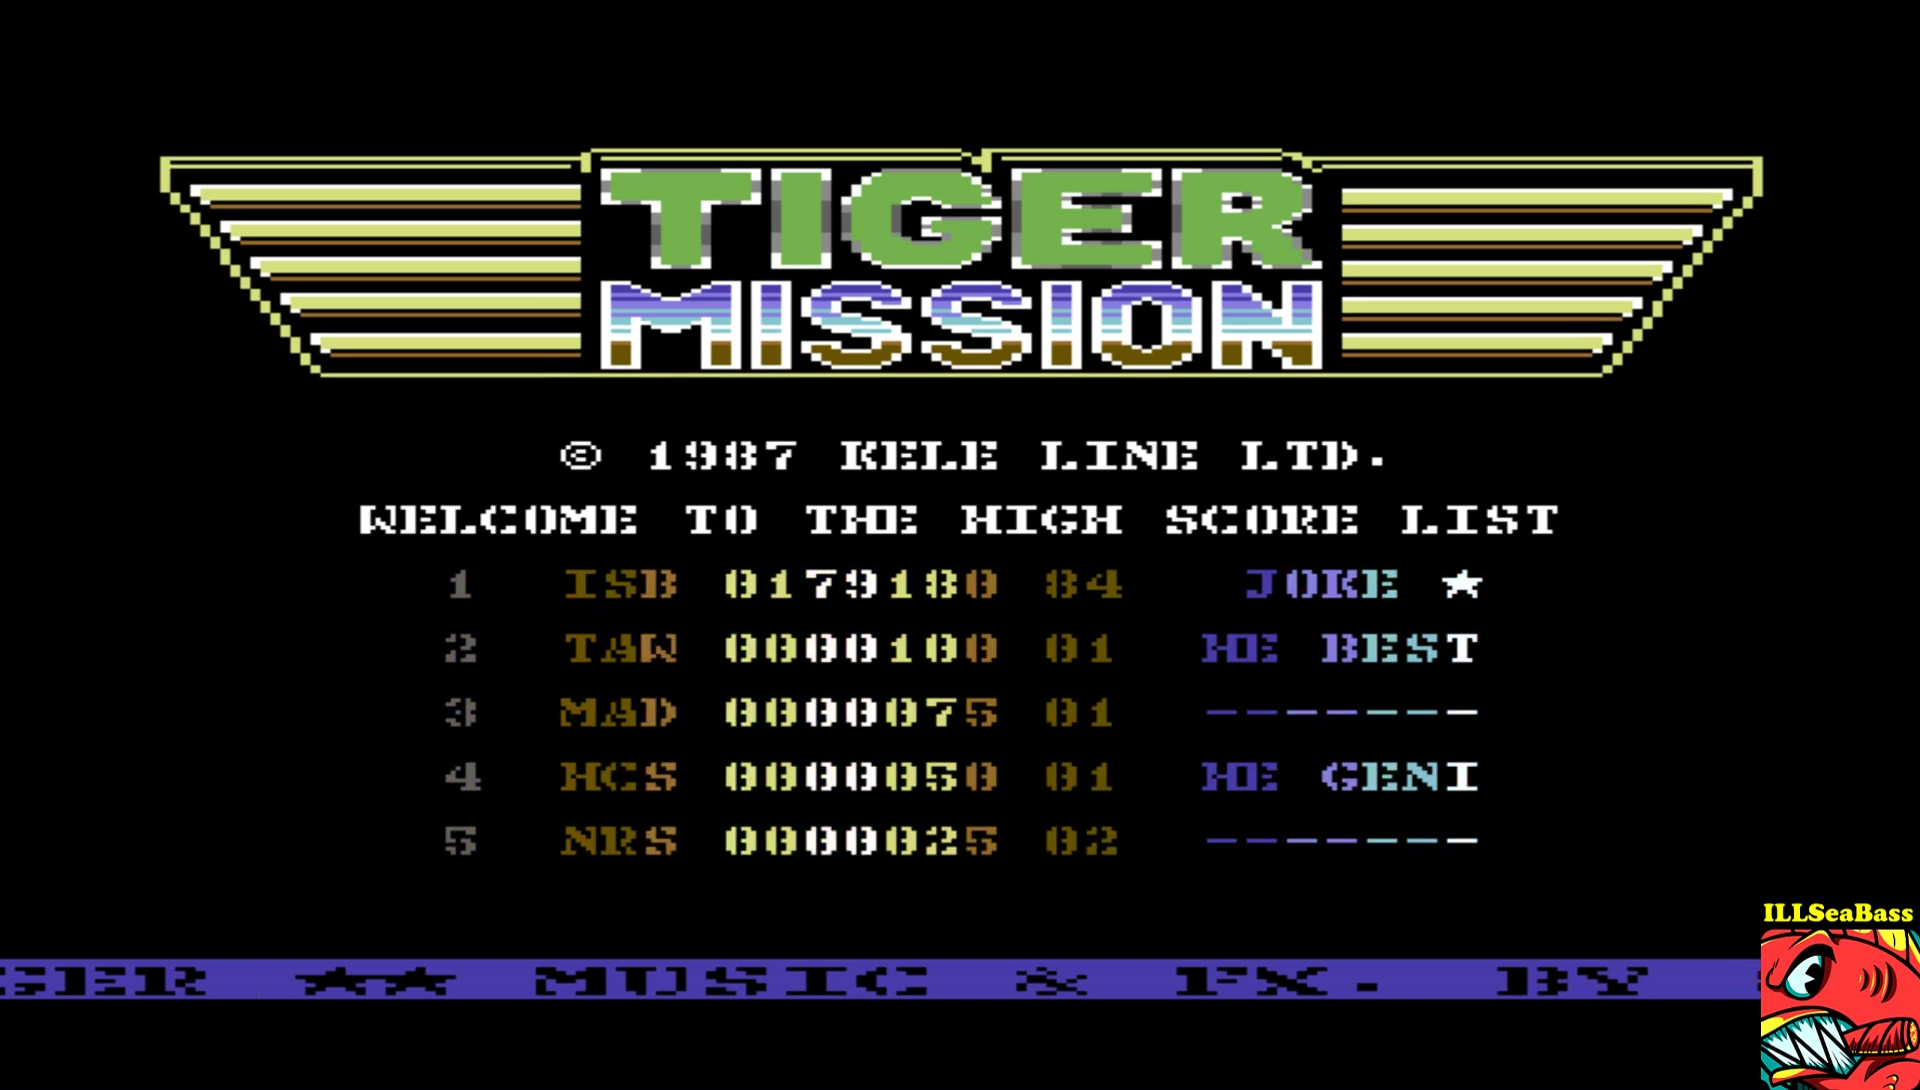 ILLSeaBass: Tiger Mission (Commodore 64 Emulated) 179,180 points on 2017-04-10 13:36:37